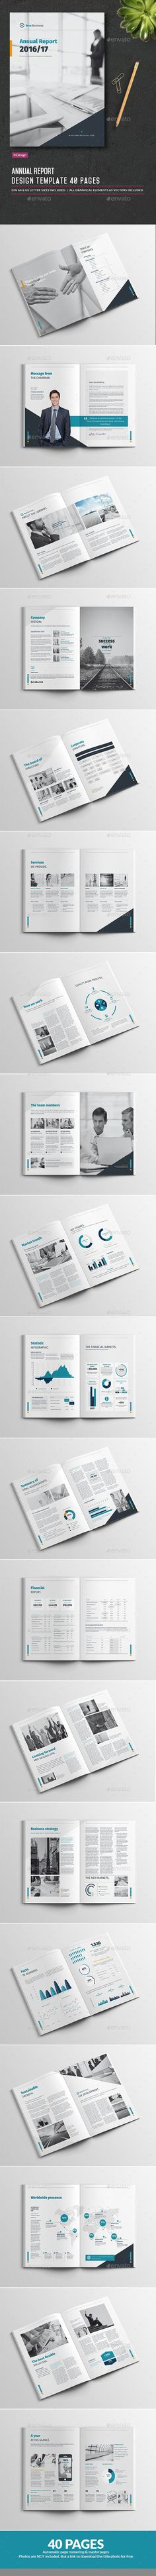 Annual Report 2016/17 Template InDesign INDD. Download here: https://graphicriver.net/item/annual-report-201617/17596471?ref=ksioks